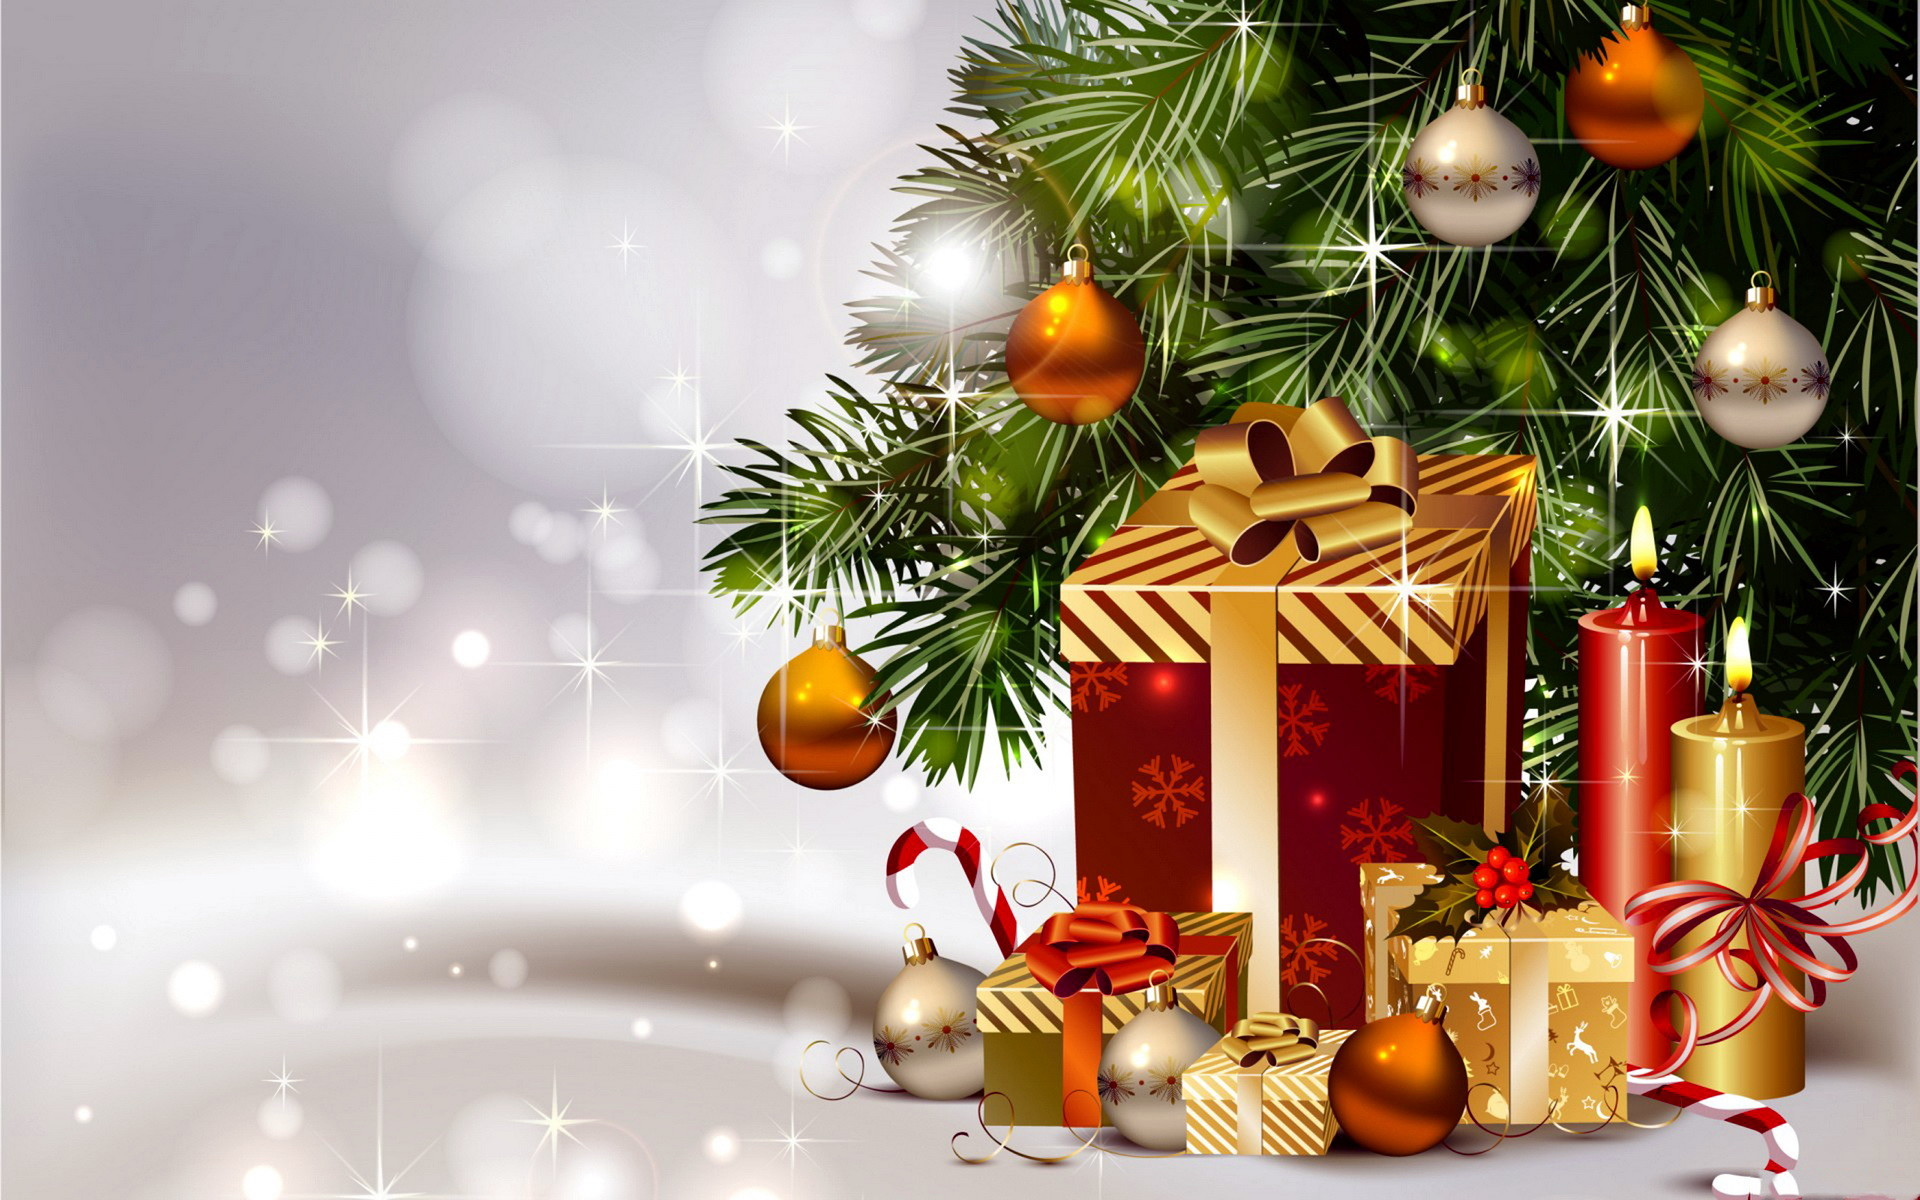 3D Christmas Wallpapers – Free download latest 3D Christmas Wallpapers for  Computer, Mobile, iPhone